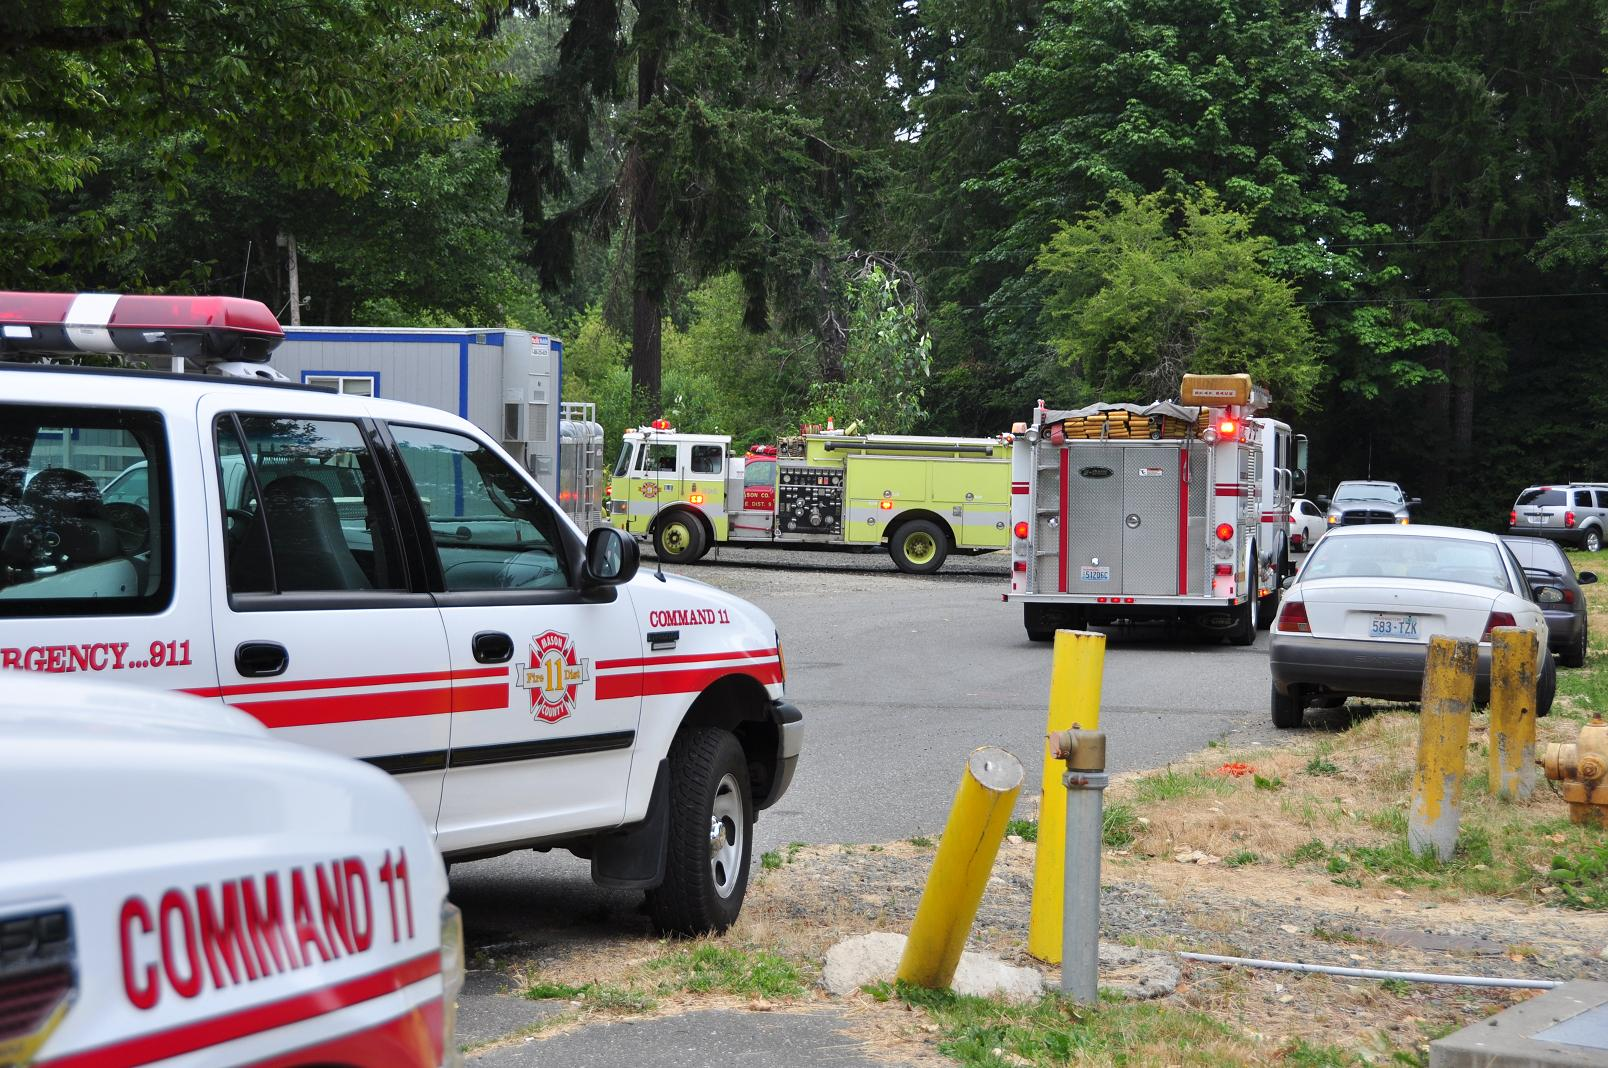 Fire units at the scene of the fire